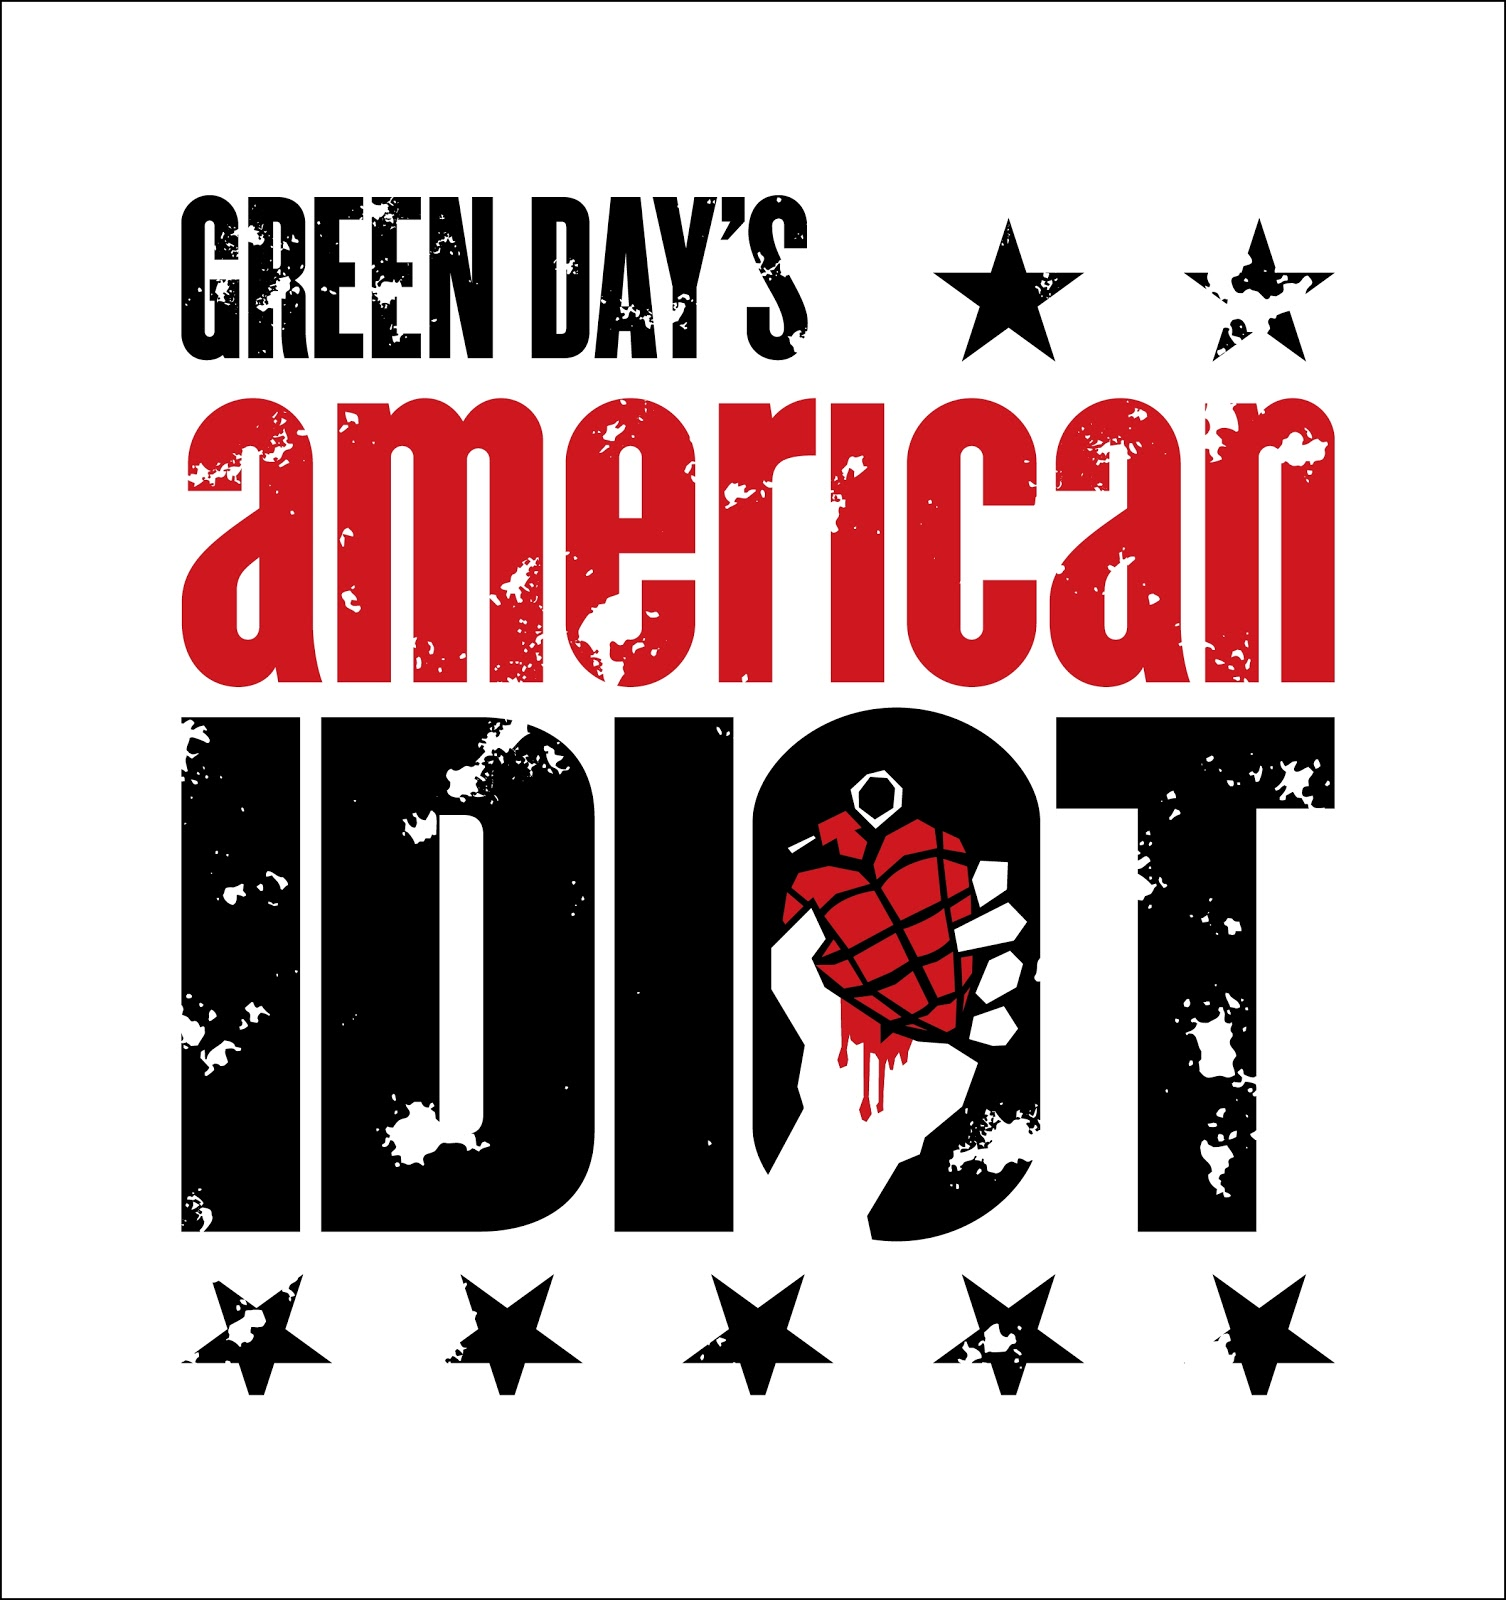 Green Day's American Idiot starts at 7:30pm tonight at Bass Performance Hall.